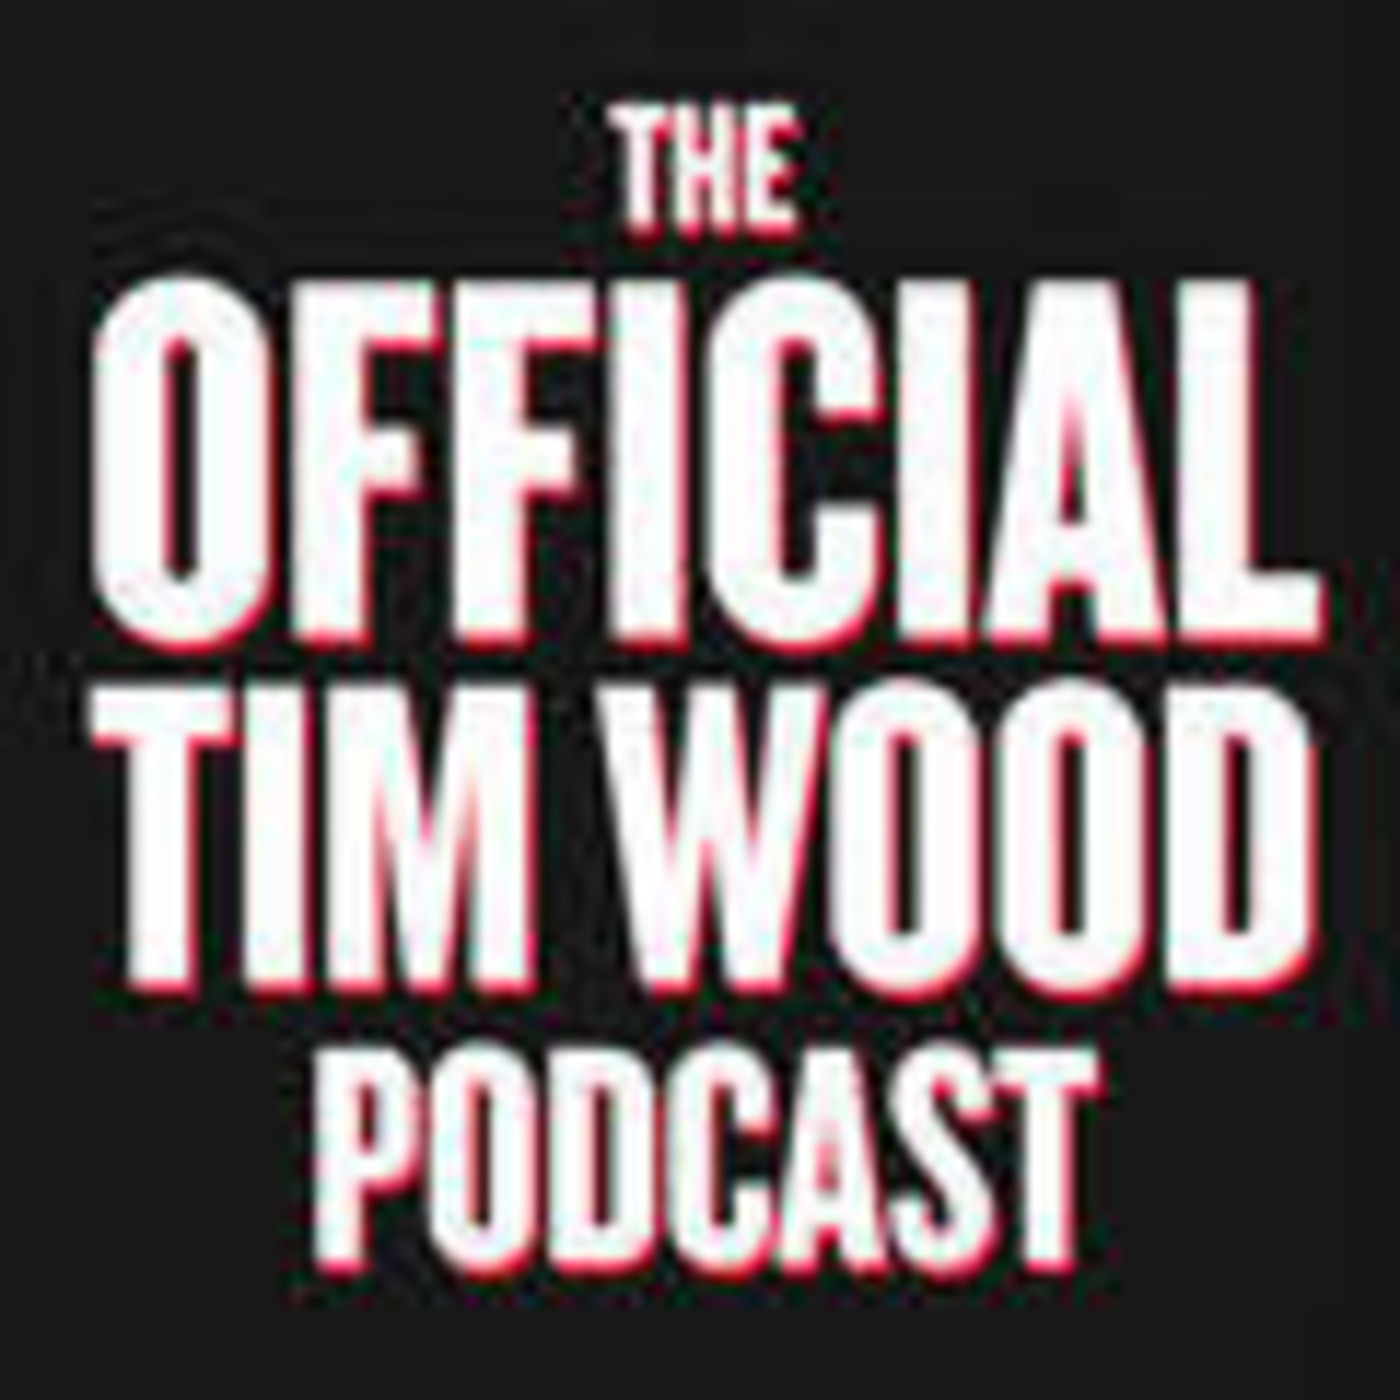 OfficialTimWood